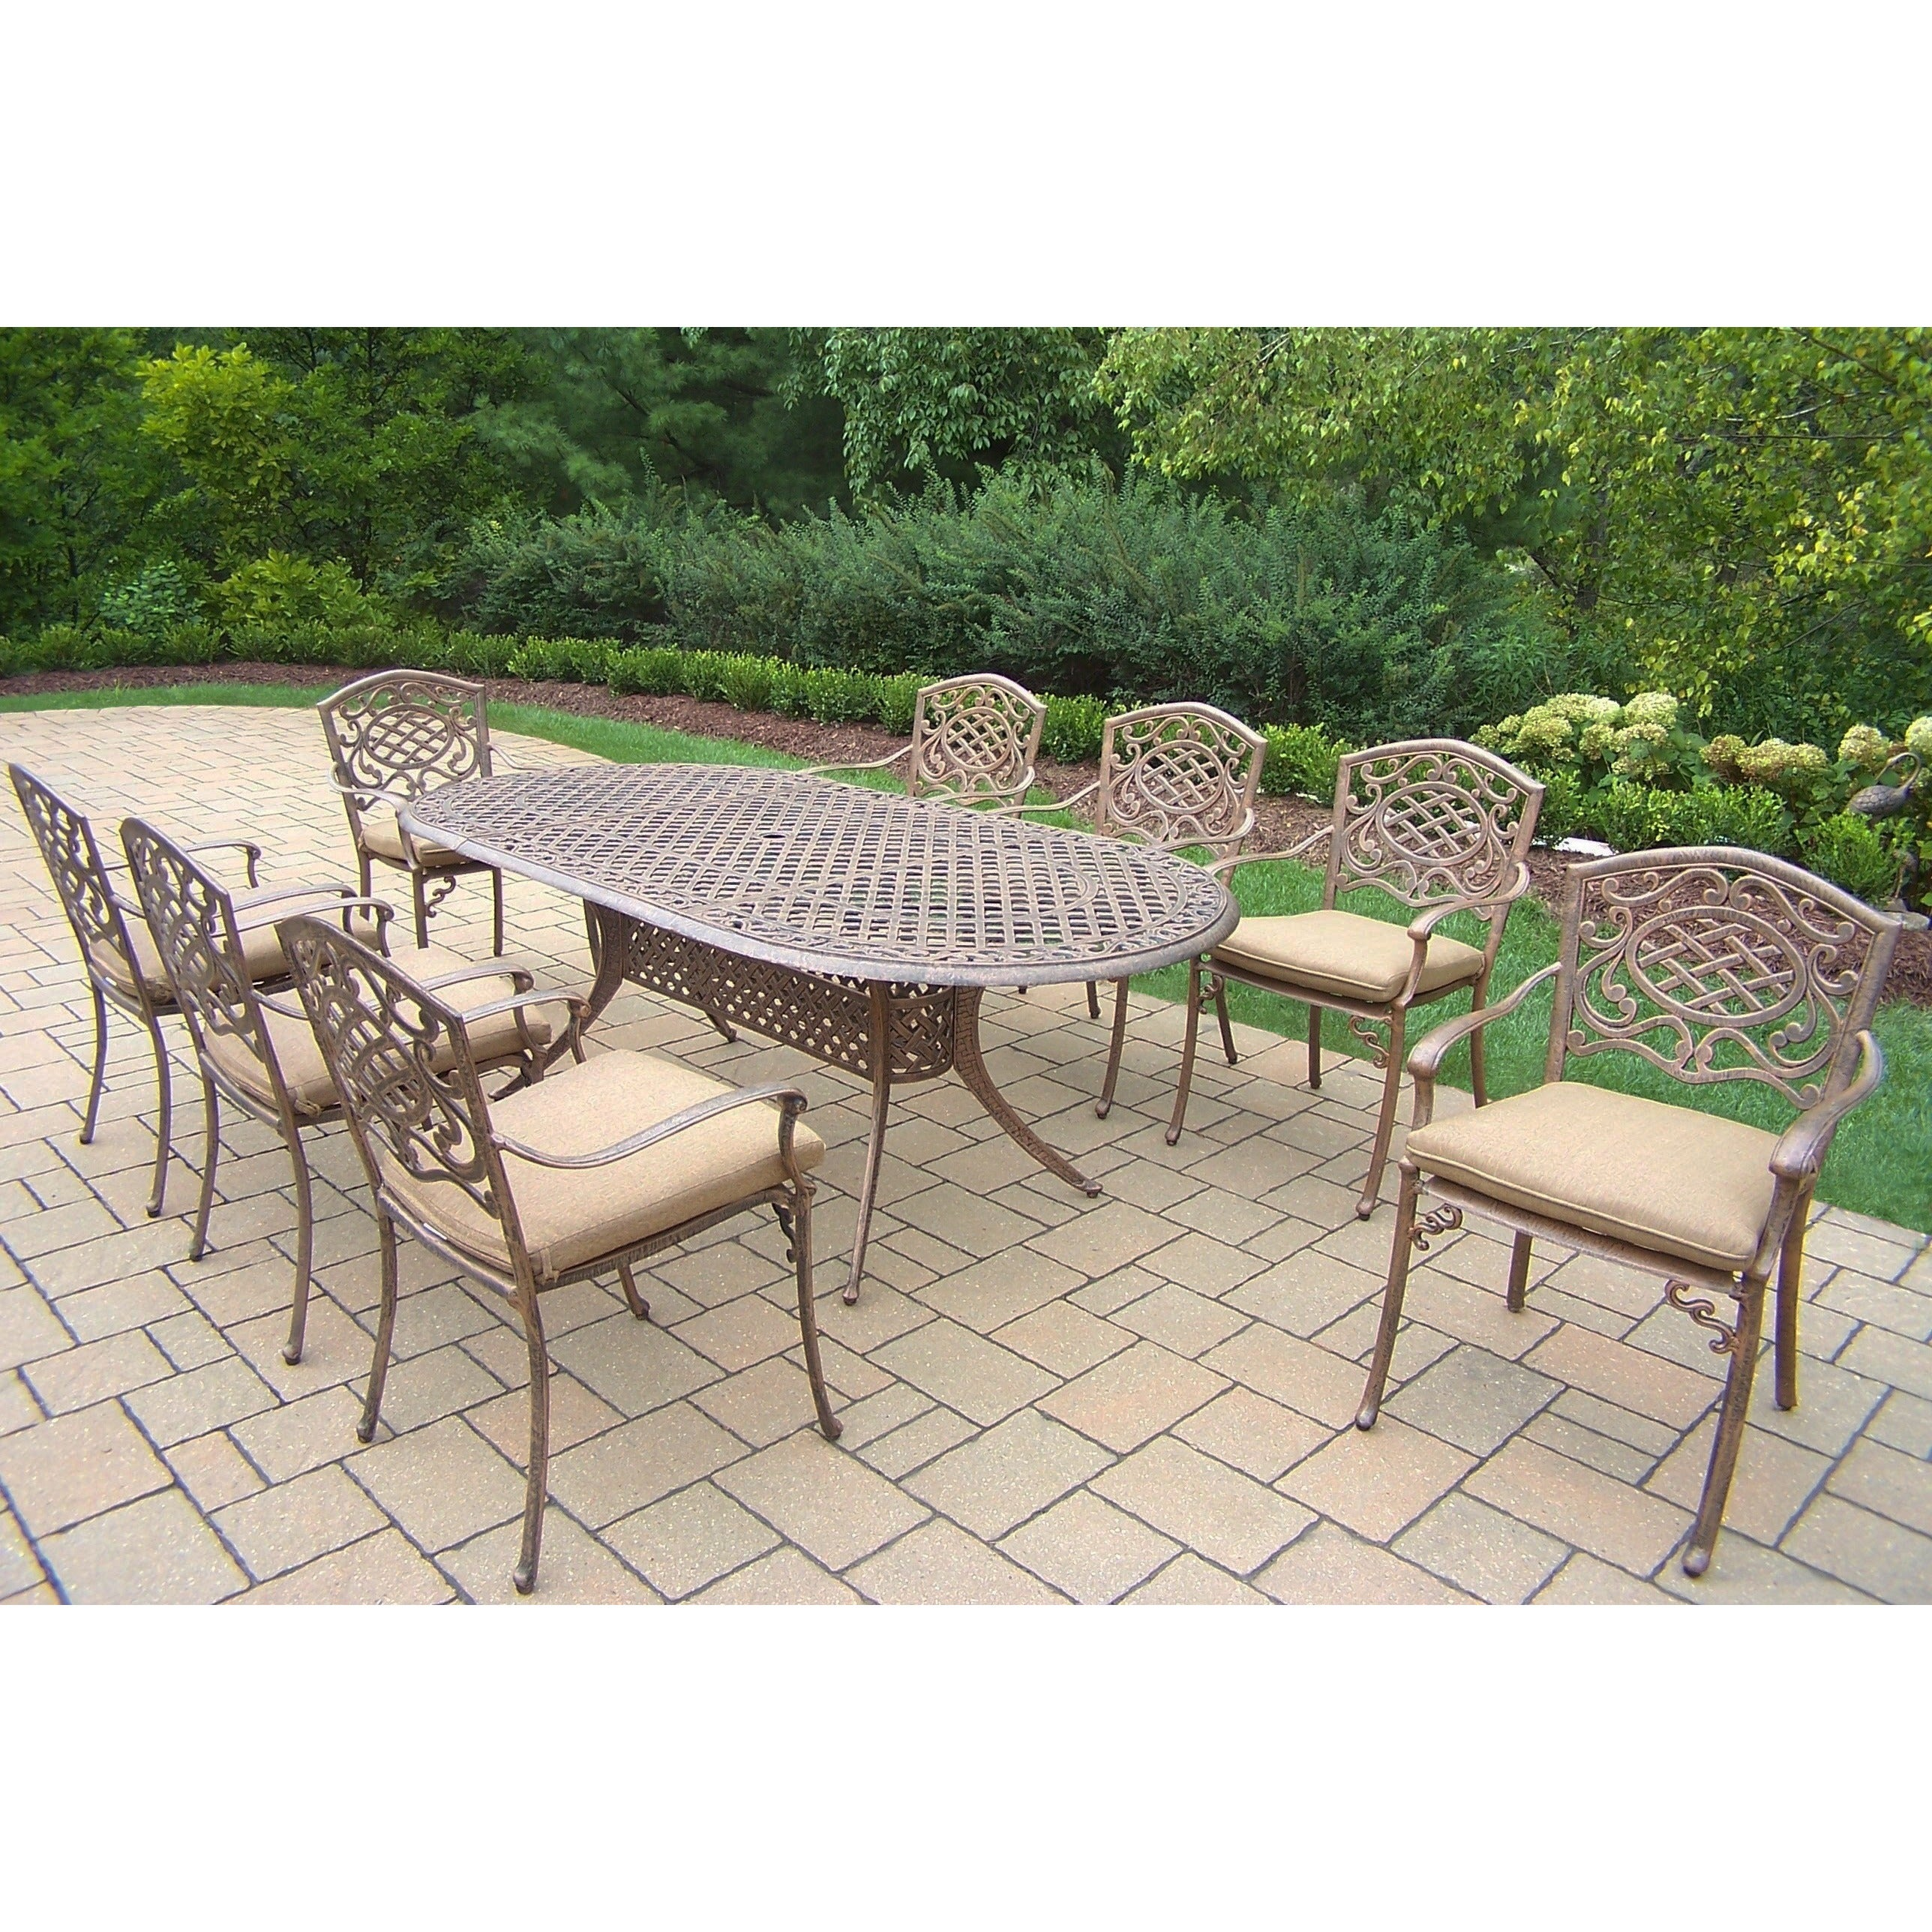 Dakota Aluminum/ Polyester/ Steel 9 Piece Outdoor Dining Set